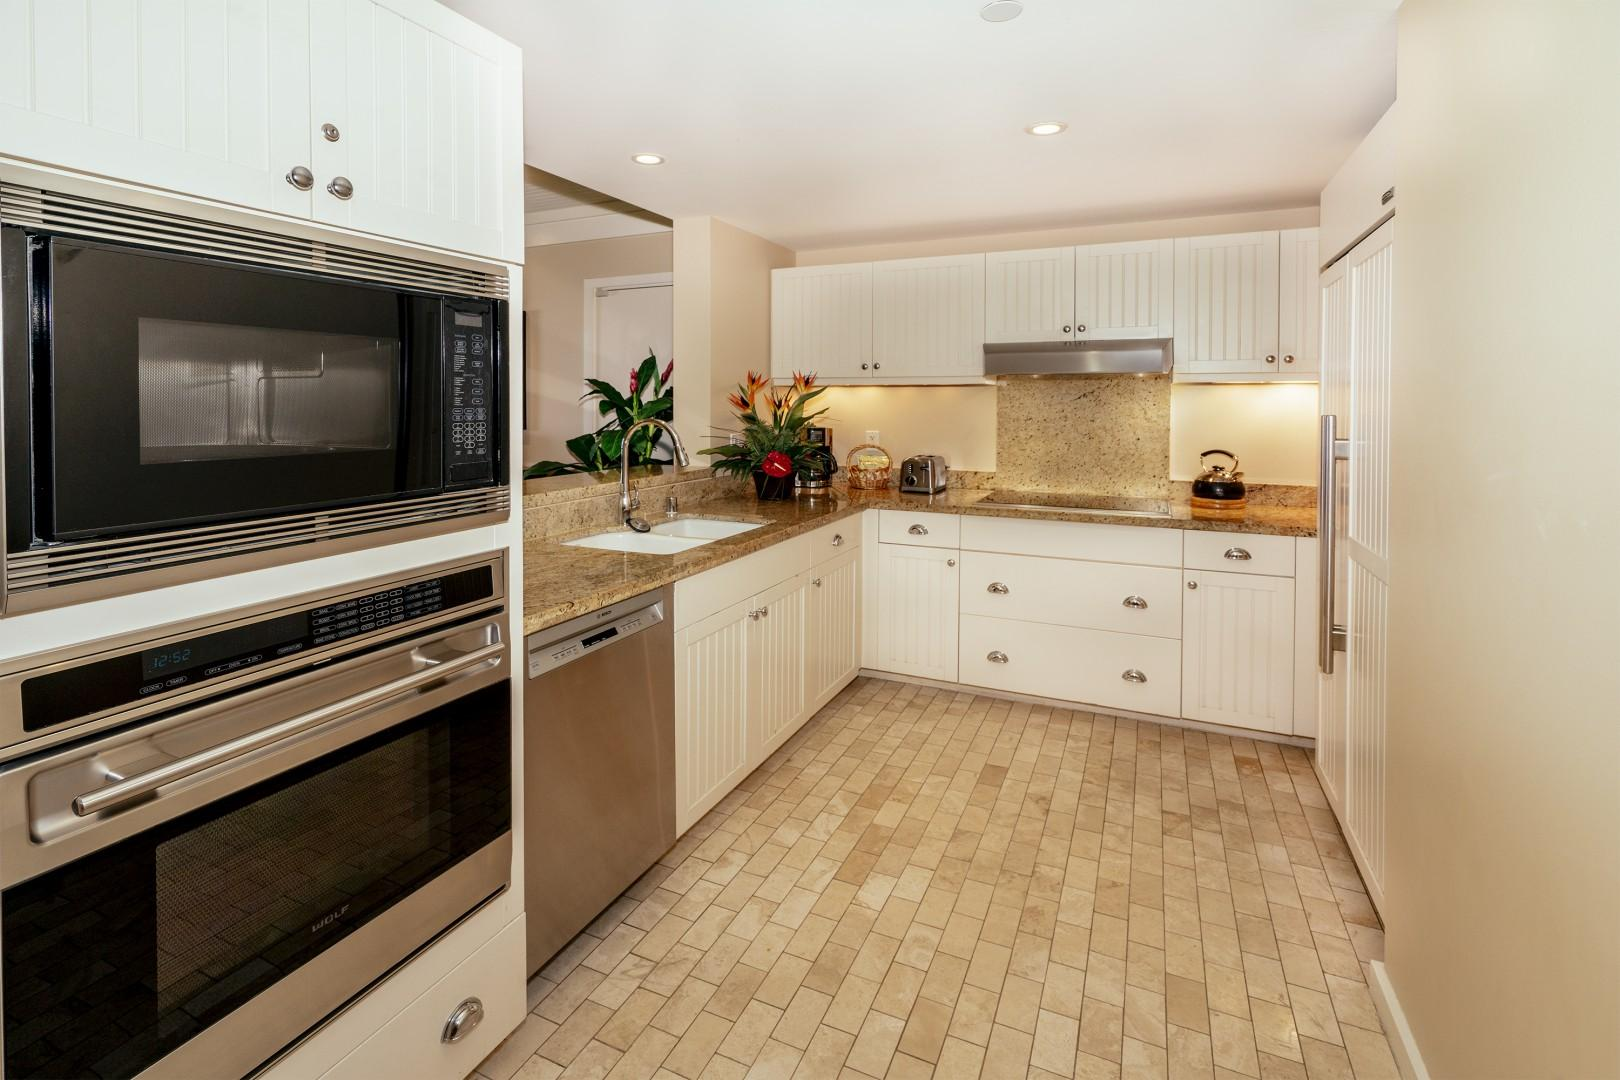 Fully-stocked kitchen with high-end Sub-zero and Wolf appliances.